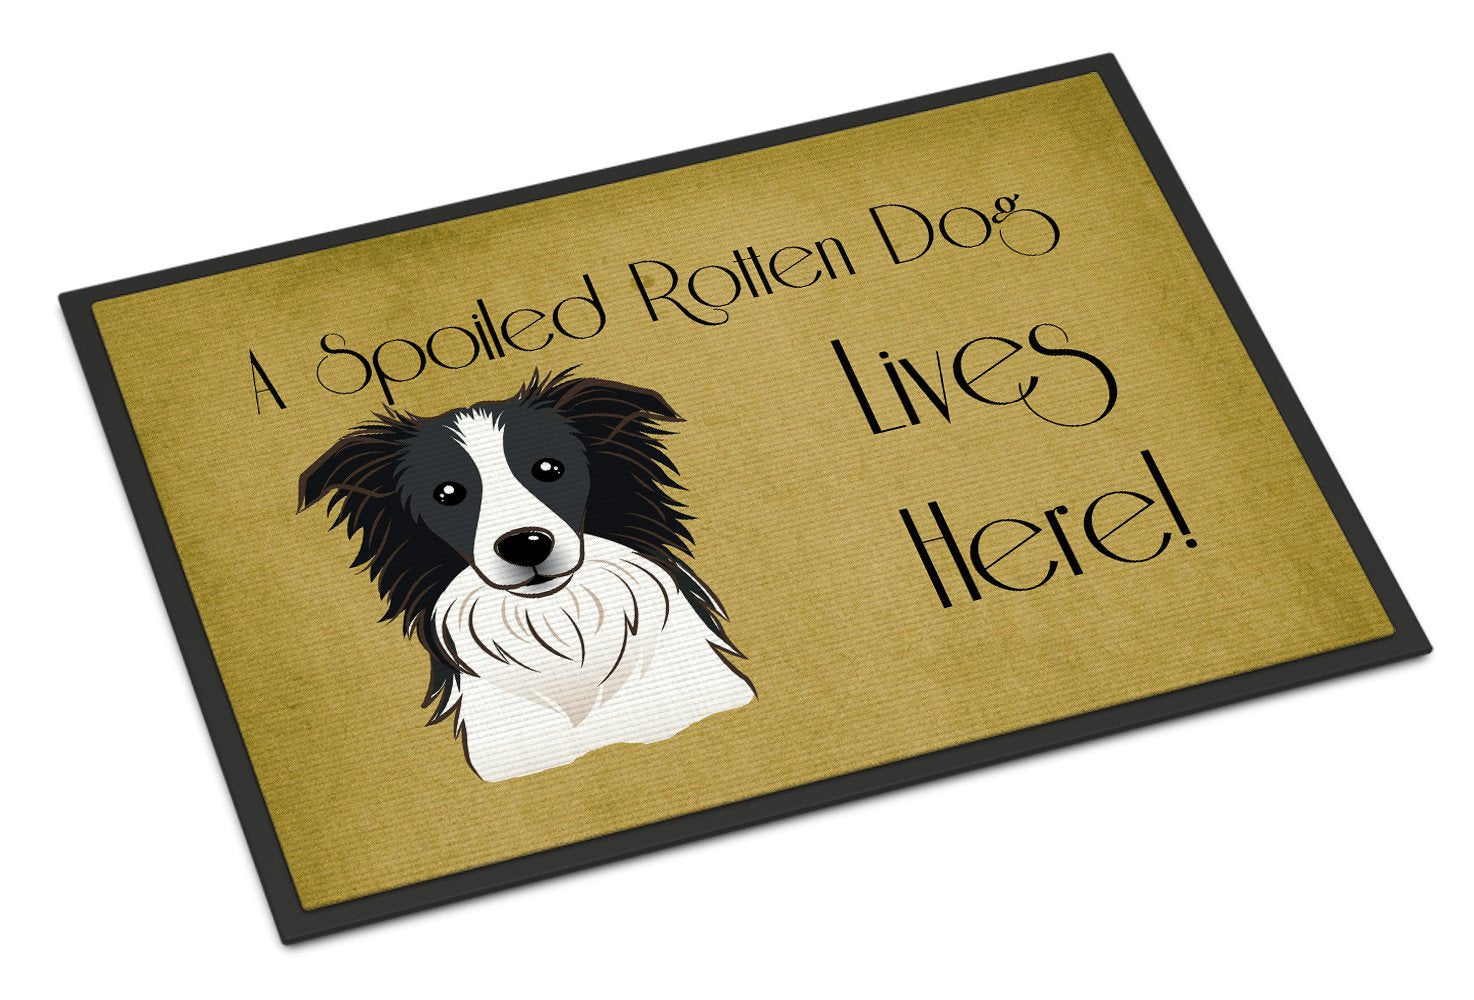 Border Collie Spoiled Dog Lives Here Indoor or Outdoor Mat 18x27 BB1489MAT - the-store.com